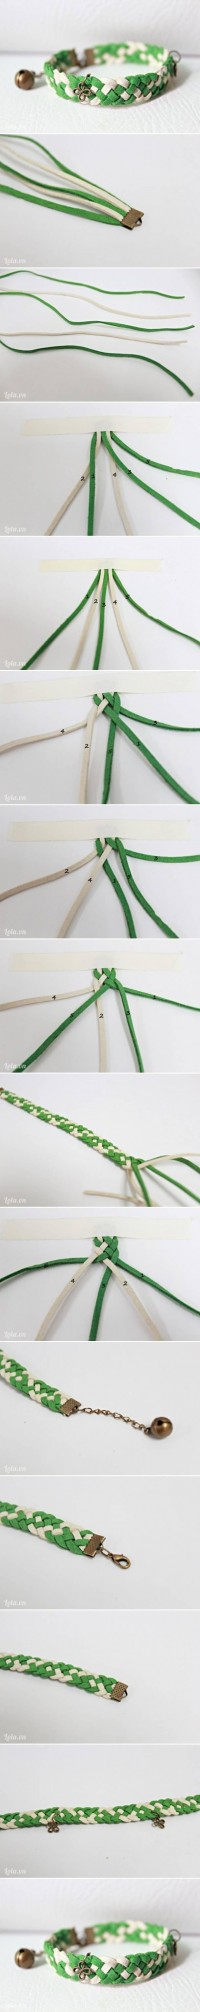 DIY Nice Spring Wristband DIY Projects | UsefulDIY.com